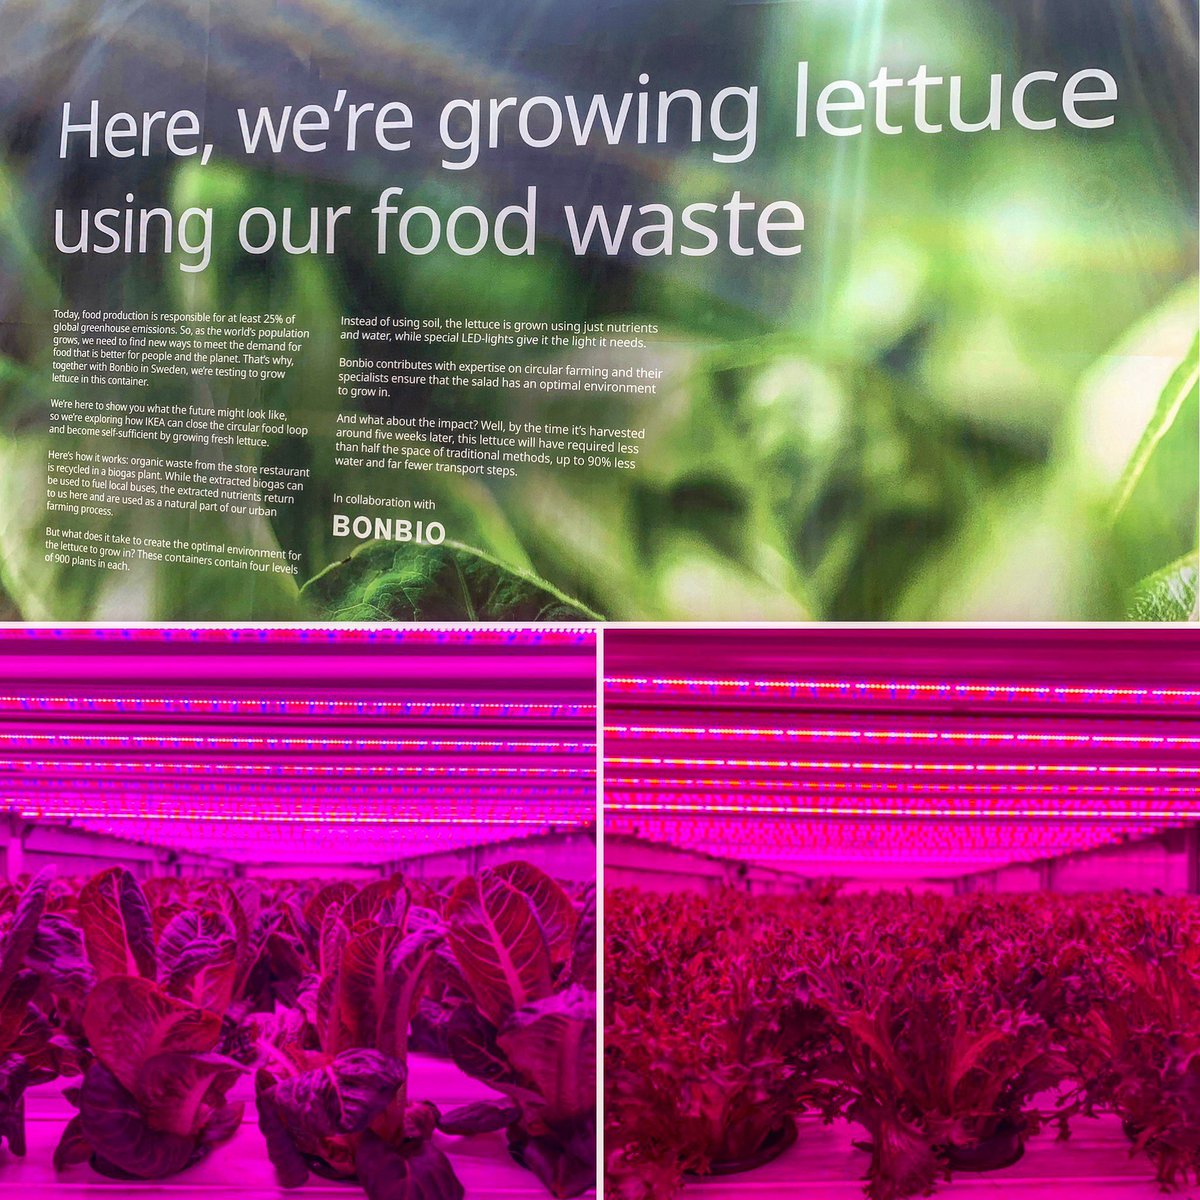 We are growing lettuce using our #foodwaste ! Organic waste